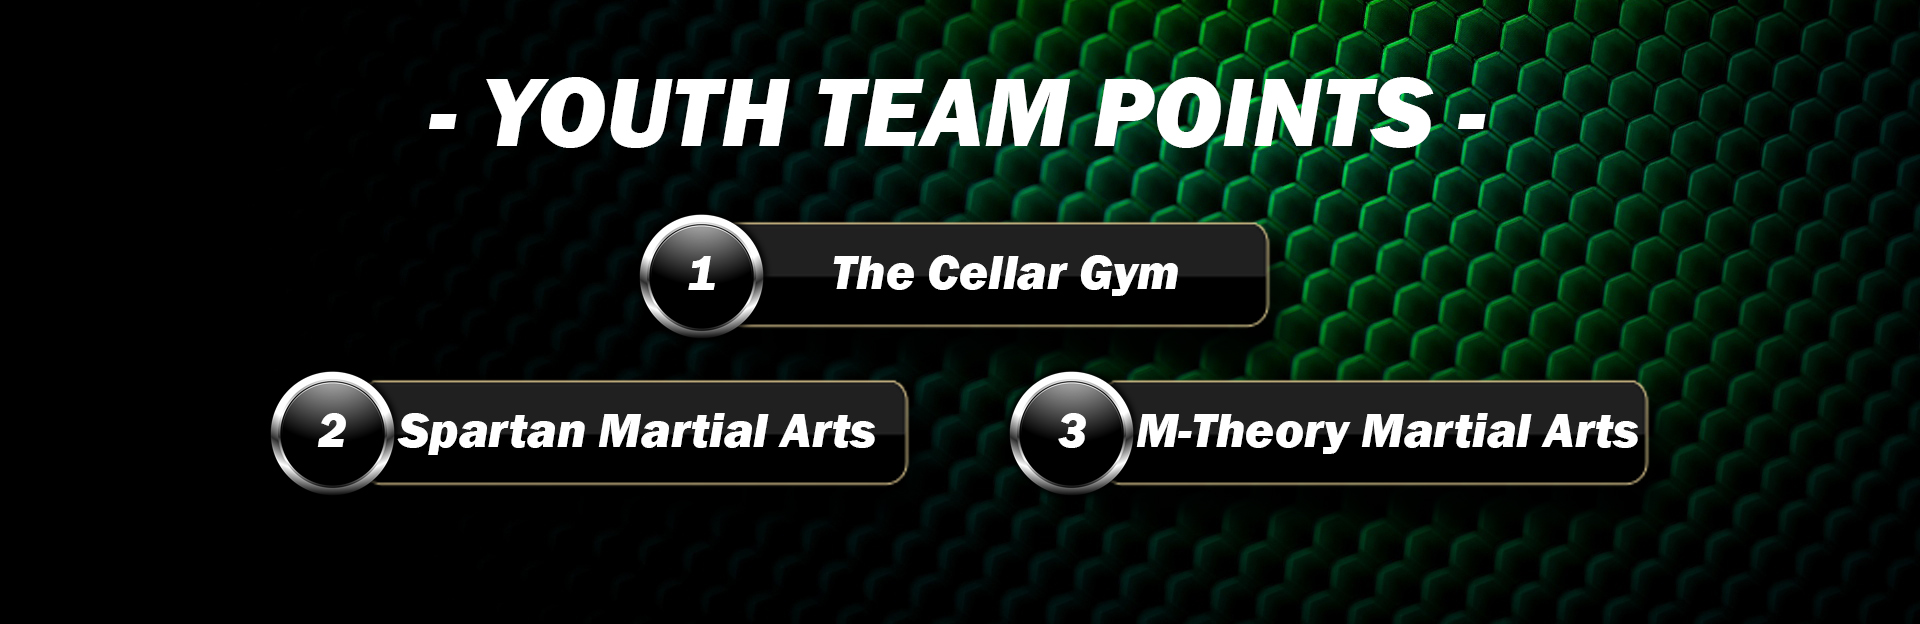 youth-team-points-2016